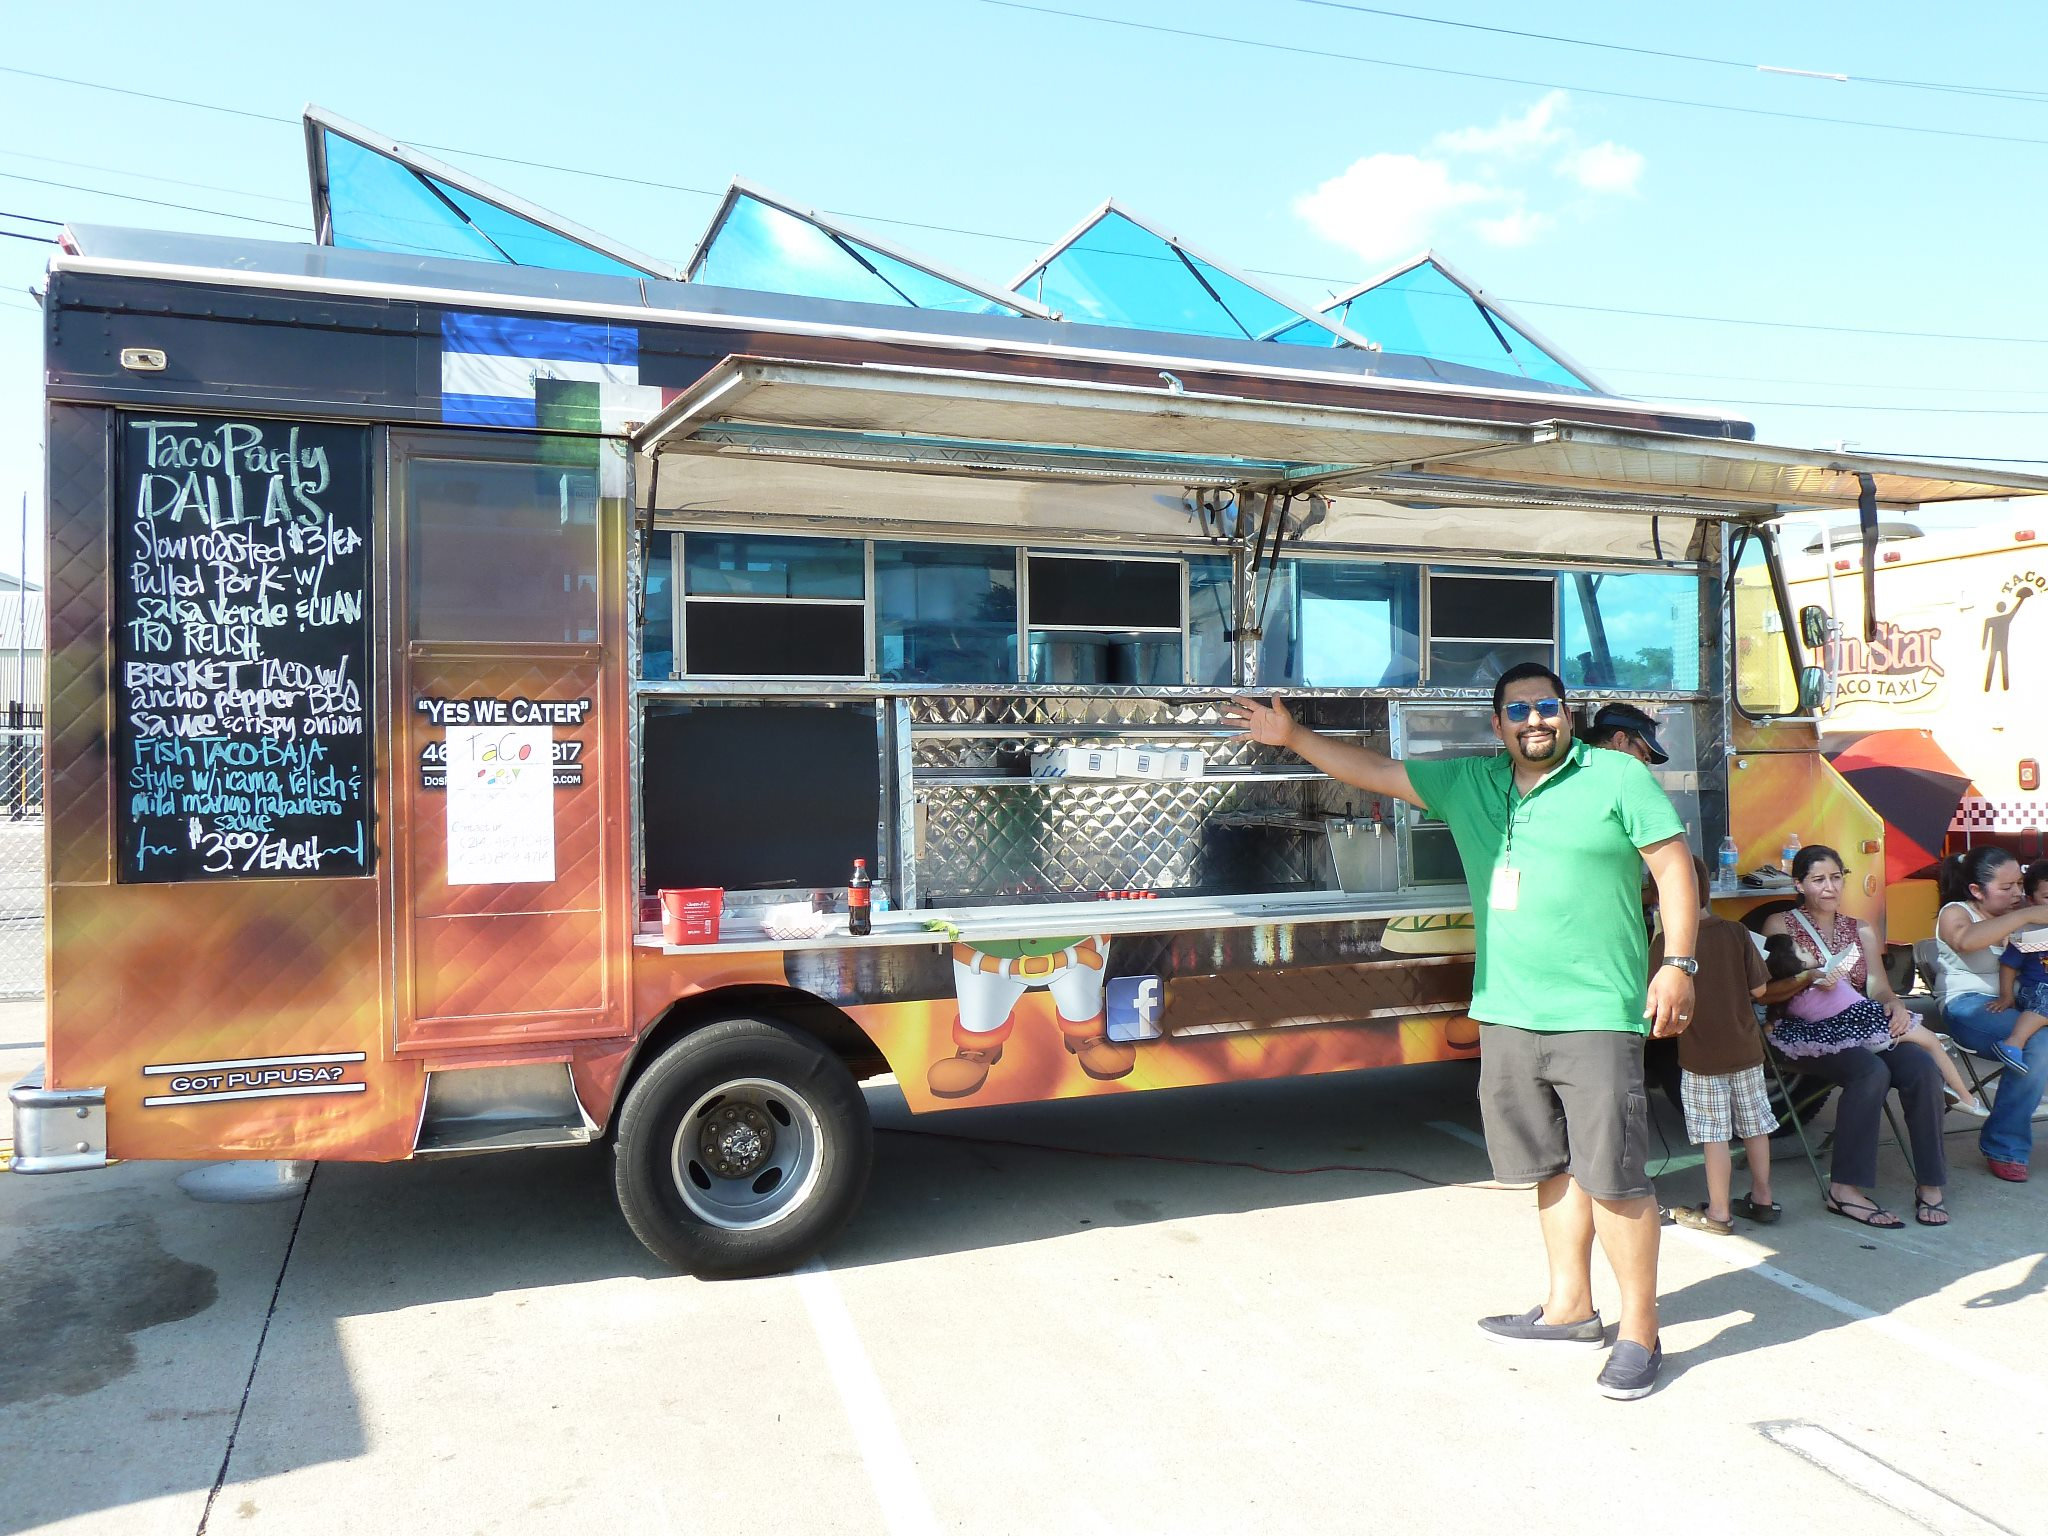 Taco Party Dallas Newest Food Truck